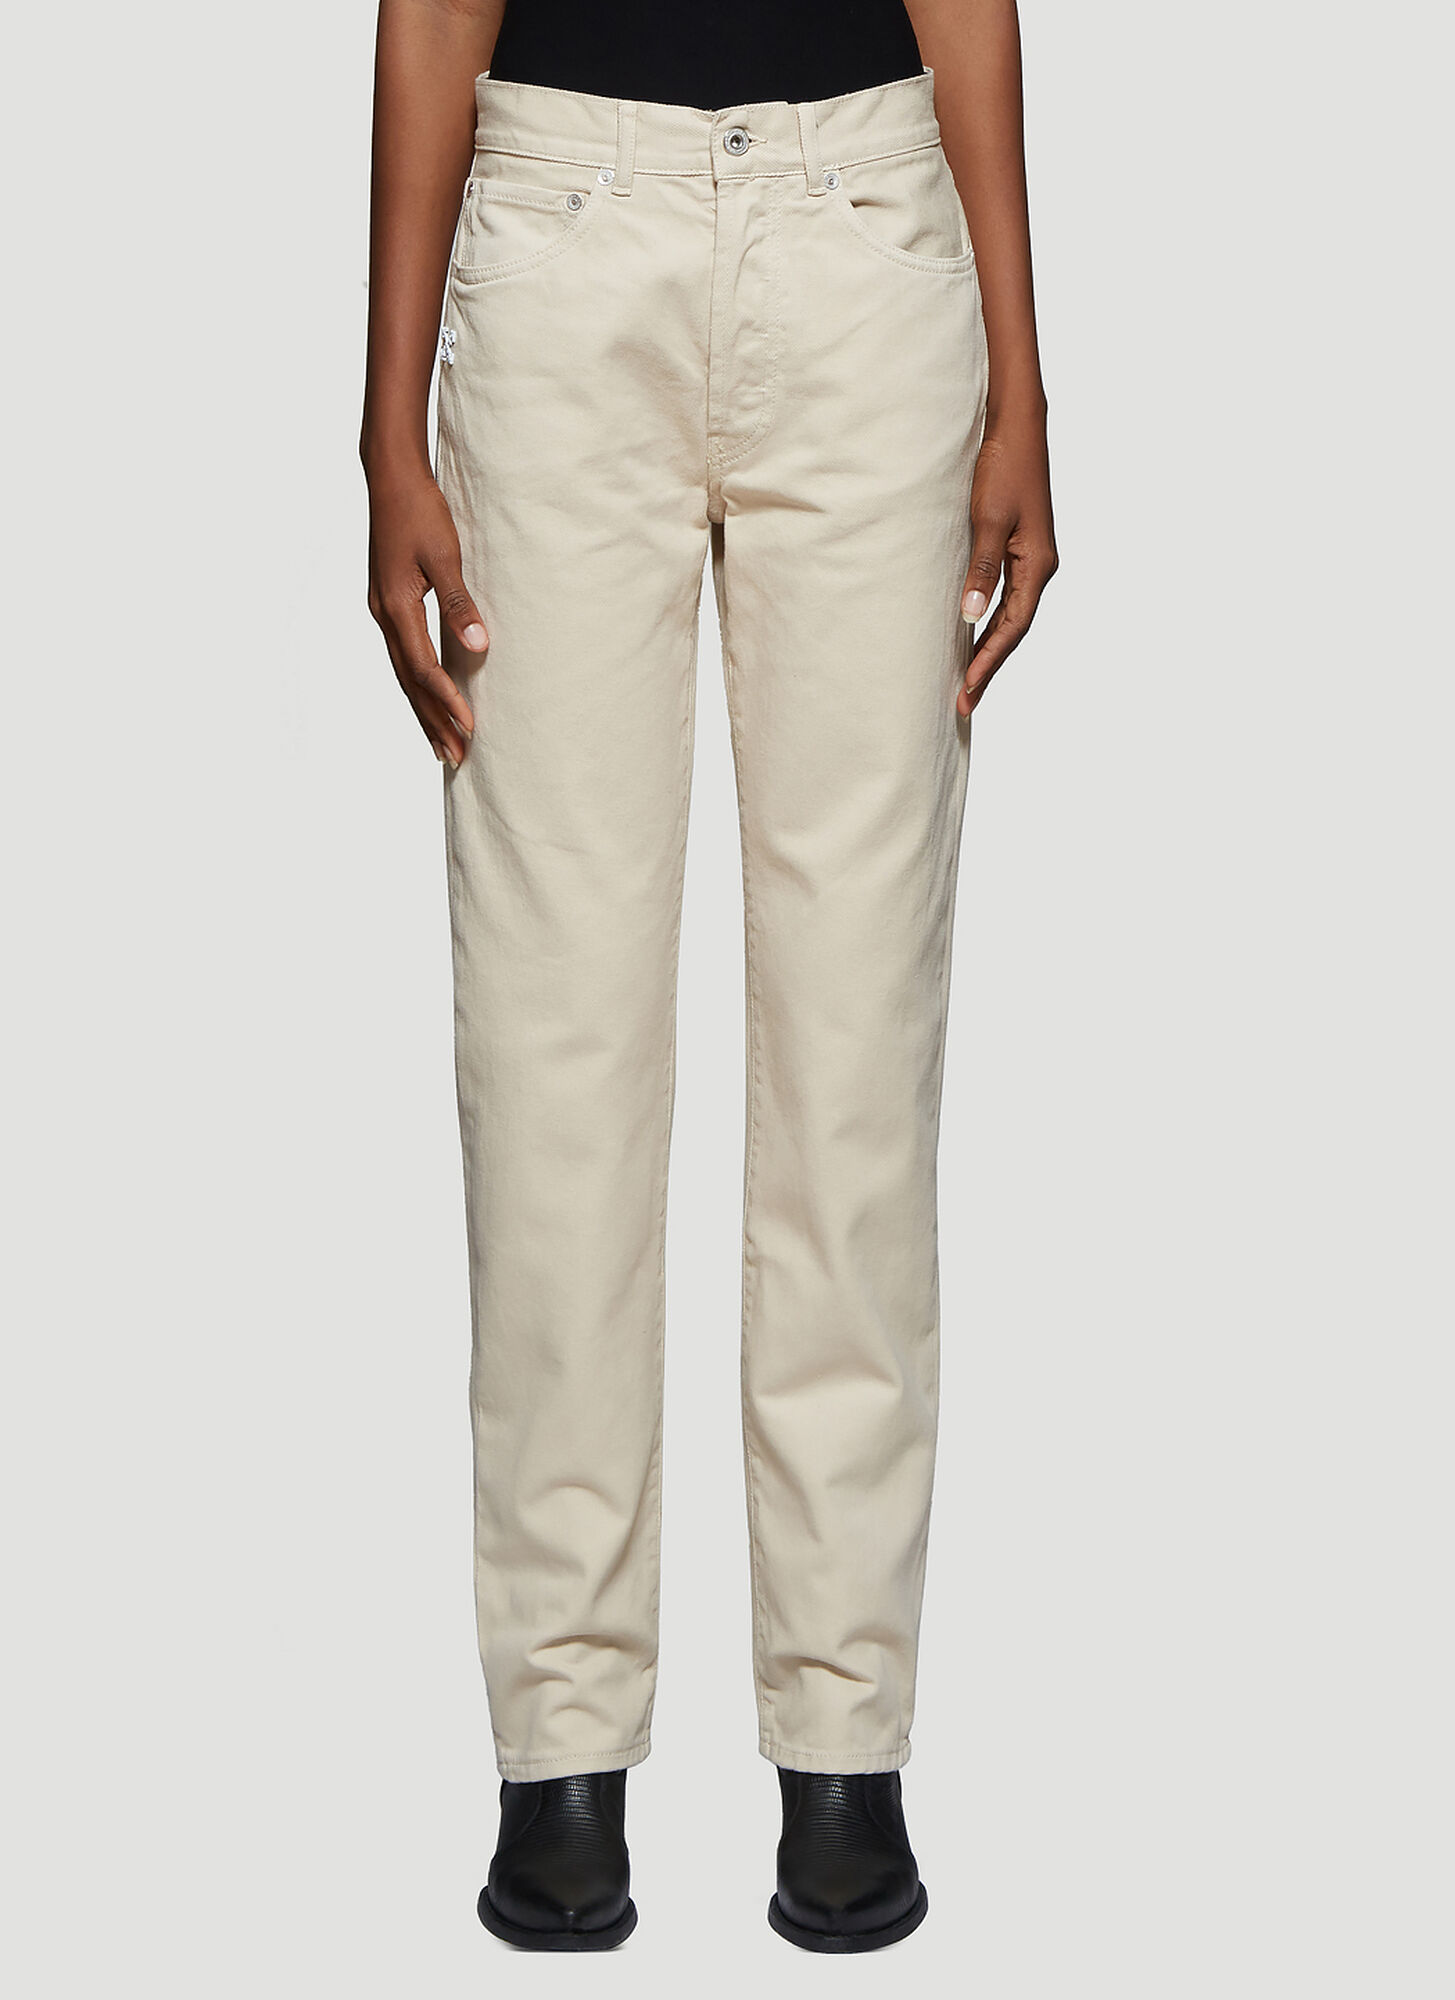 Off-White Diag Straight Leg Jeans in Beige